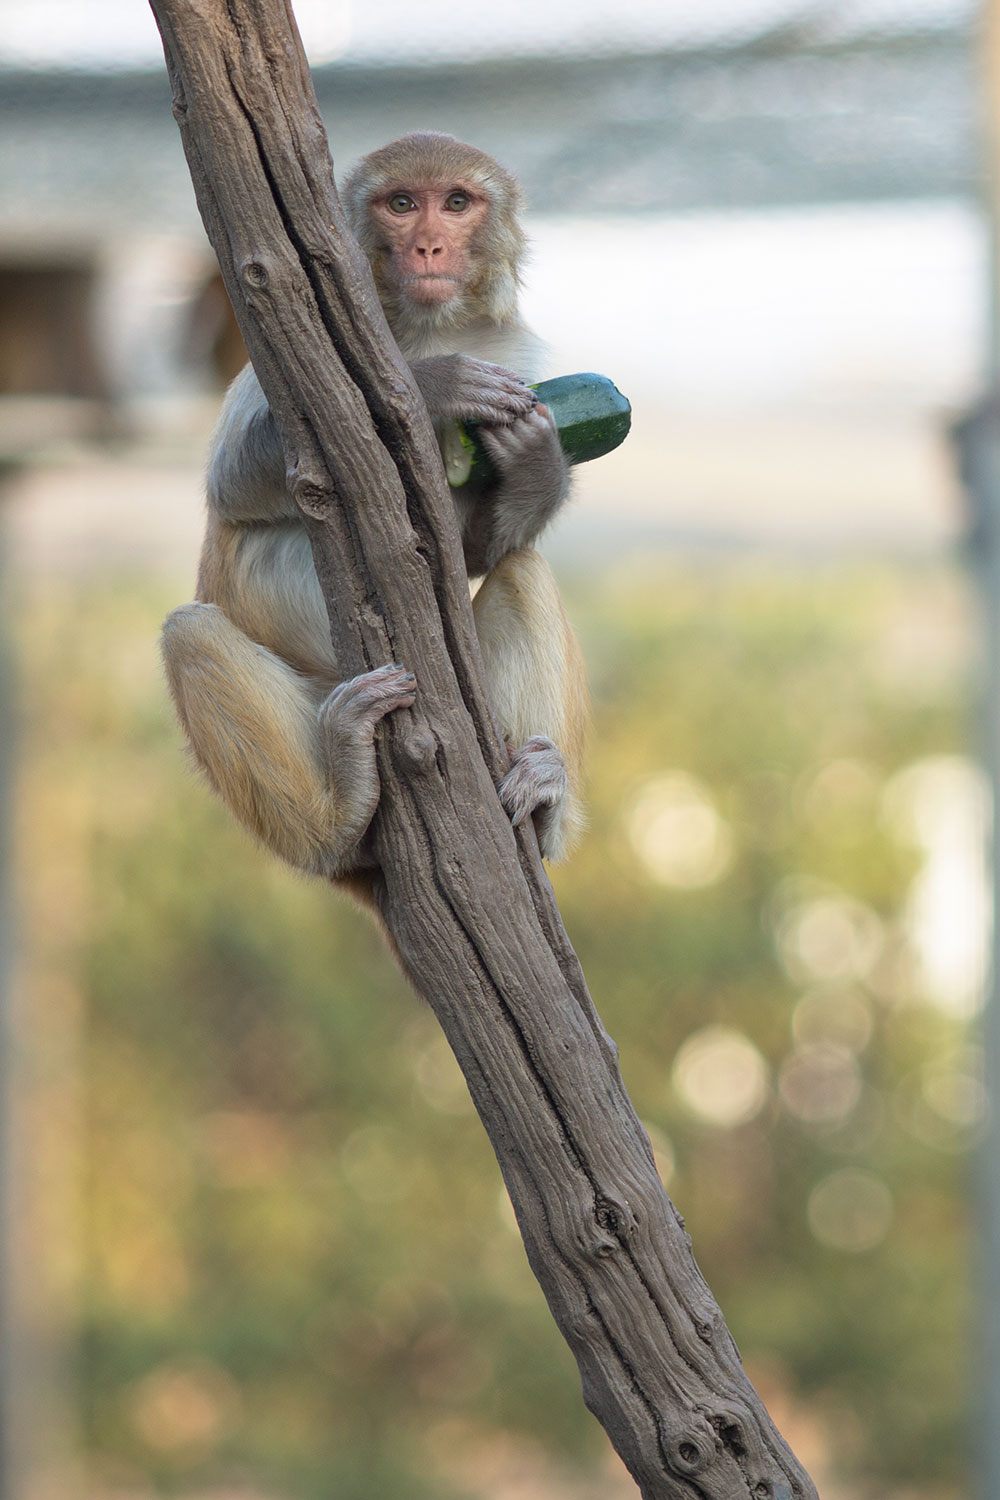 A rhesus monkey hangs onto its zucchini for later enjoyment.